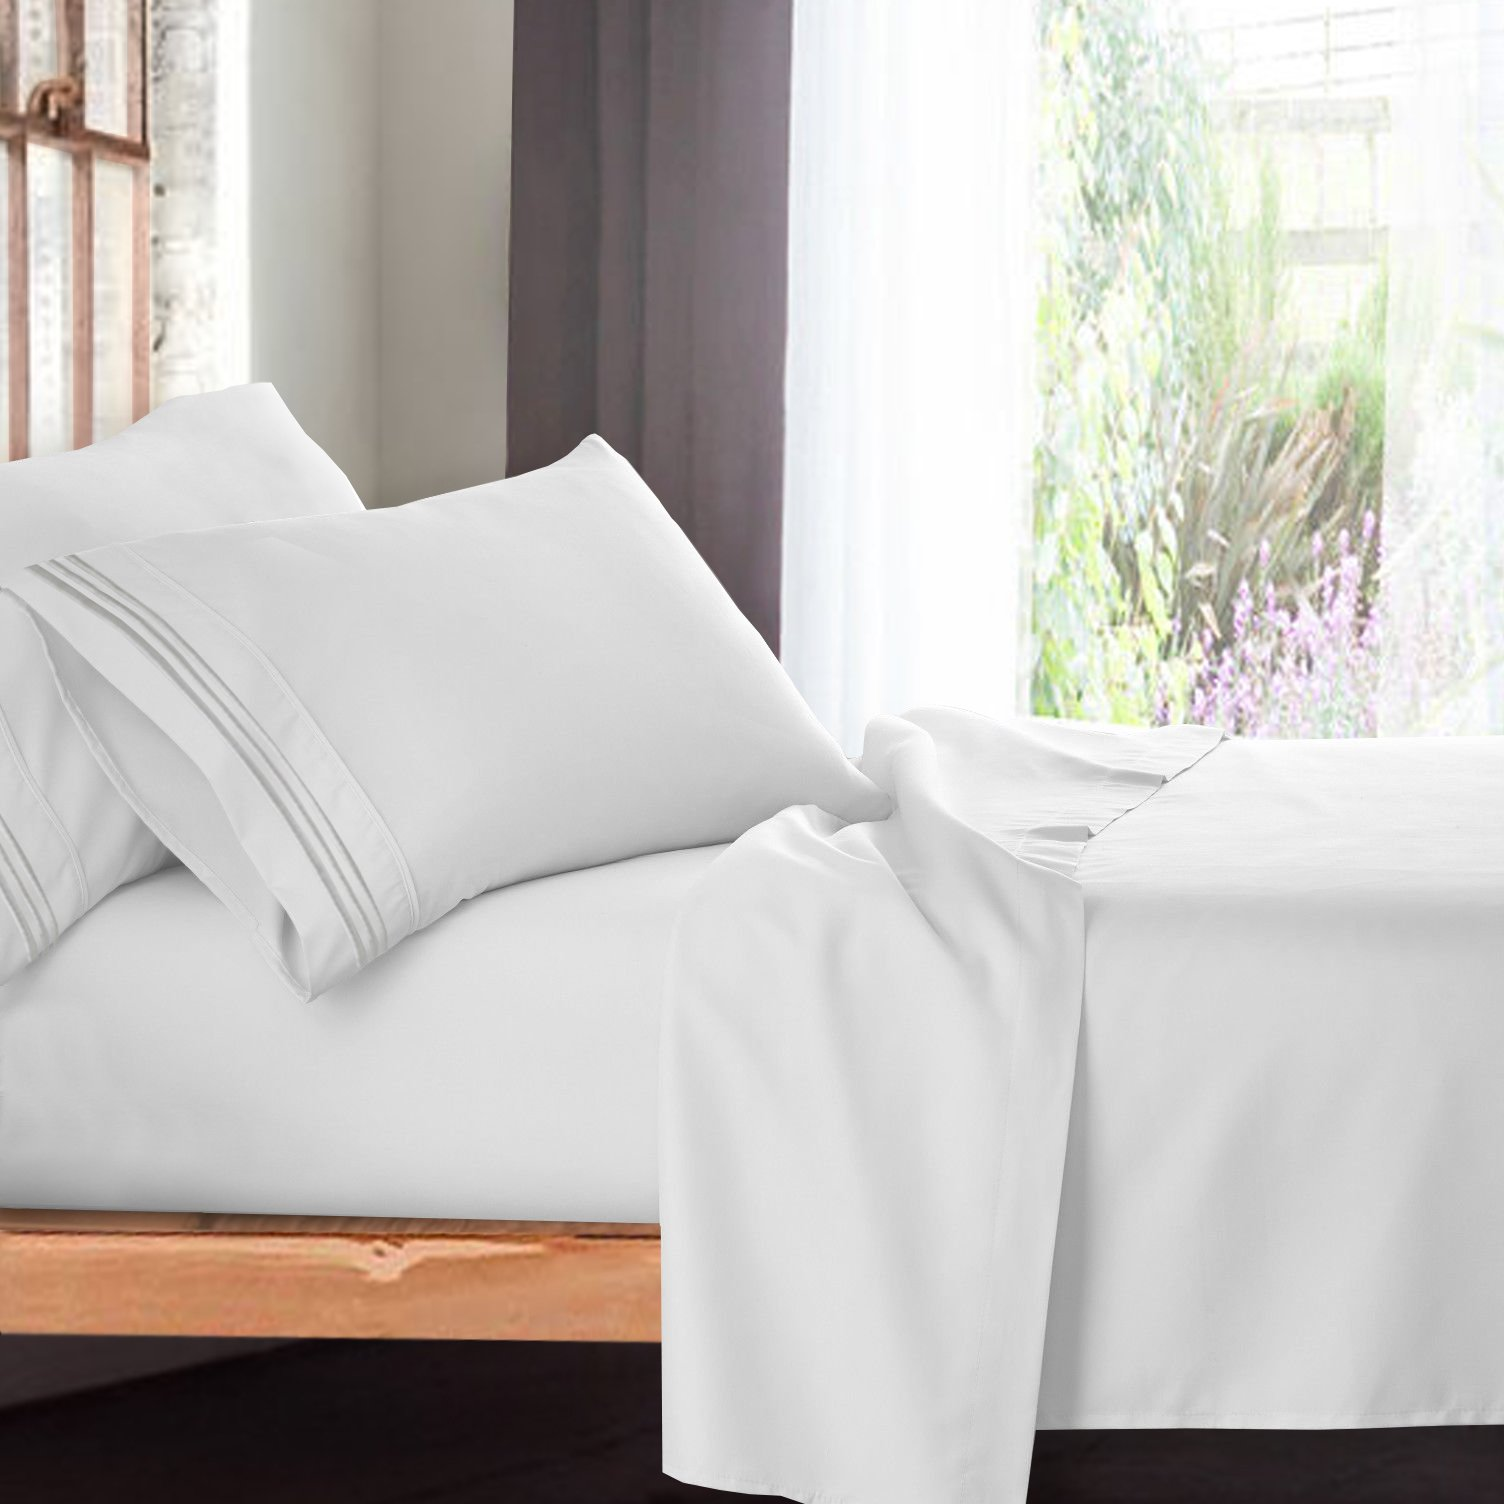 Premium Full (Double) Size Sheets Set - White Hotel Luxury 4-Piece Bed Set, Extra Deep Pocket Special Super Fit Fitted Sheet, Best Quality Microfiber Linen Soft & Durable Design + Better Sleep Guide by Empyrean Bedding (Image #10)